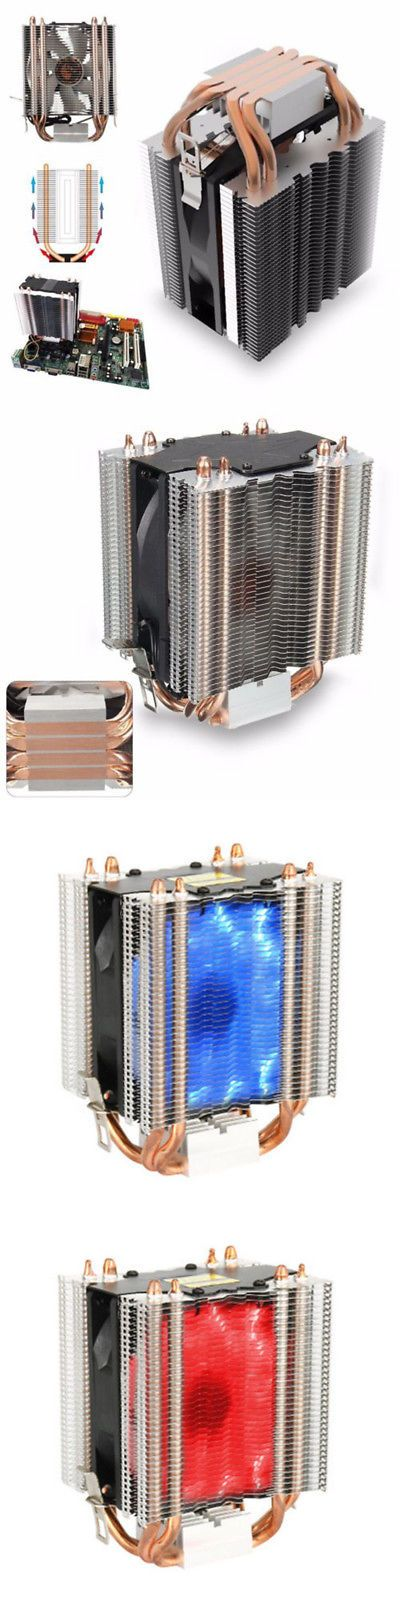 CPU Fans and Heat Sinks 131486: Core Led Cpu Easy Fan Cooler